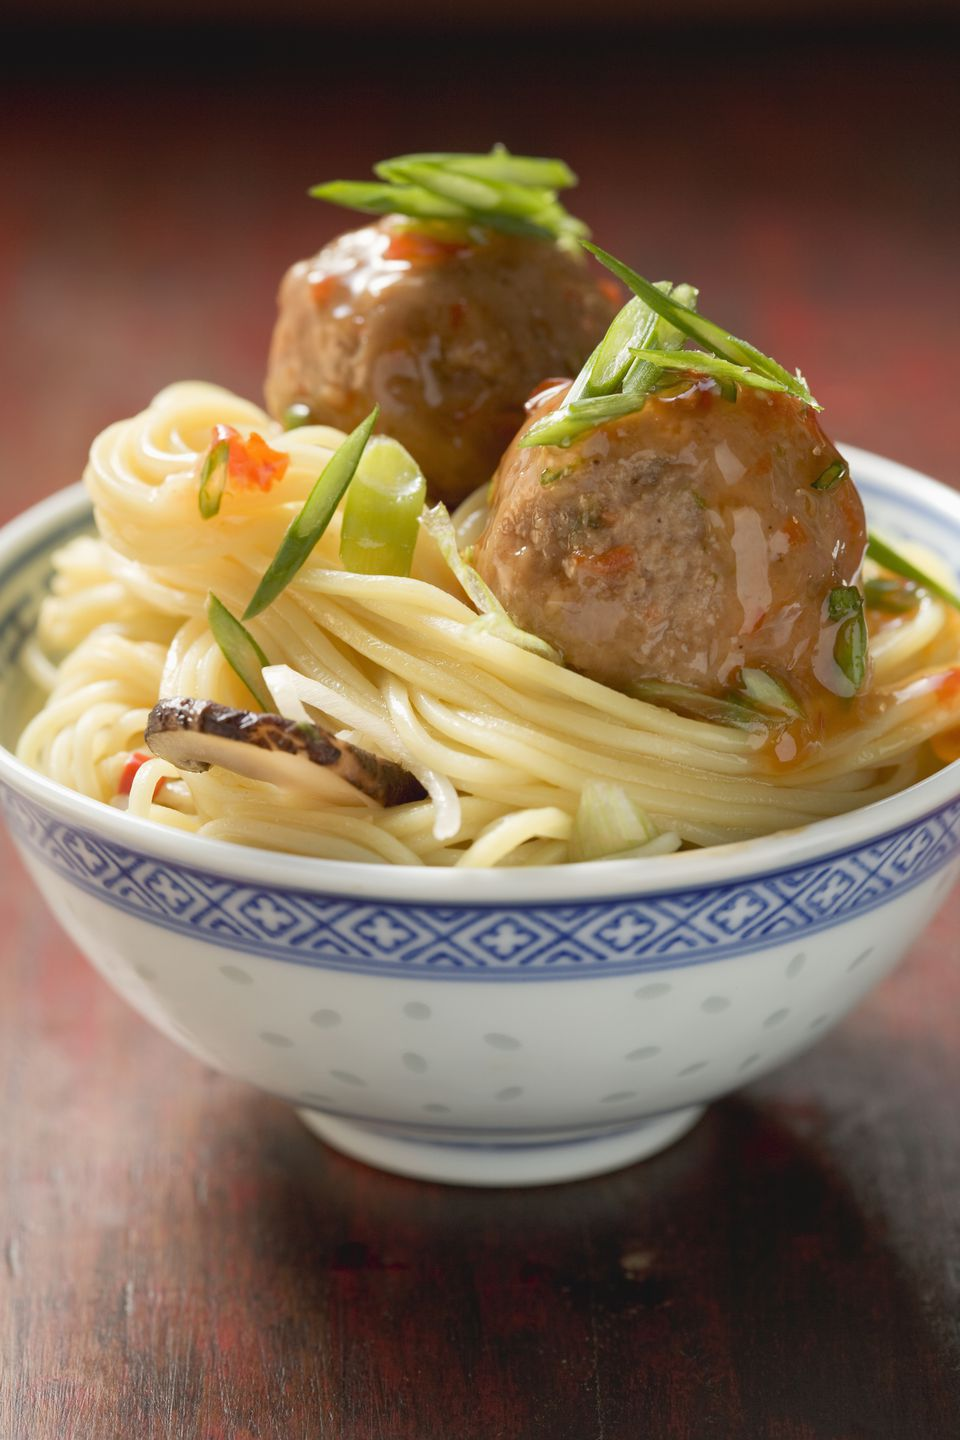 Meatballs on noodles